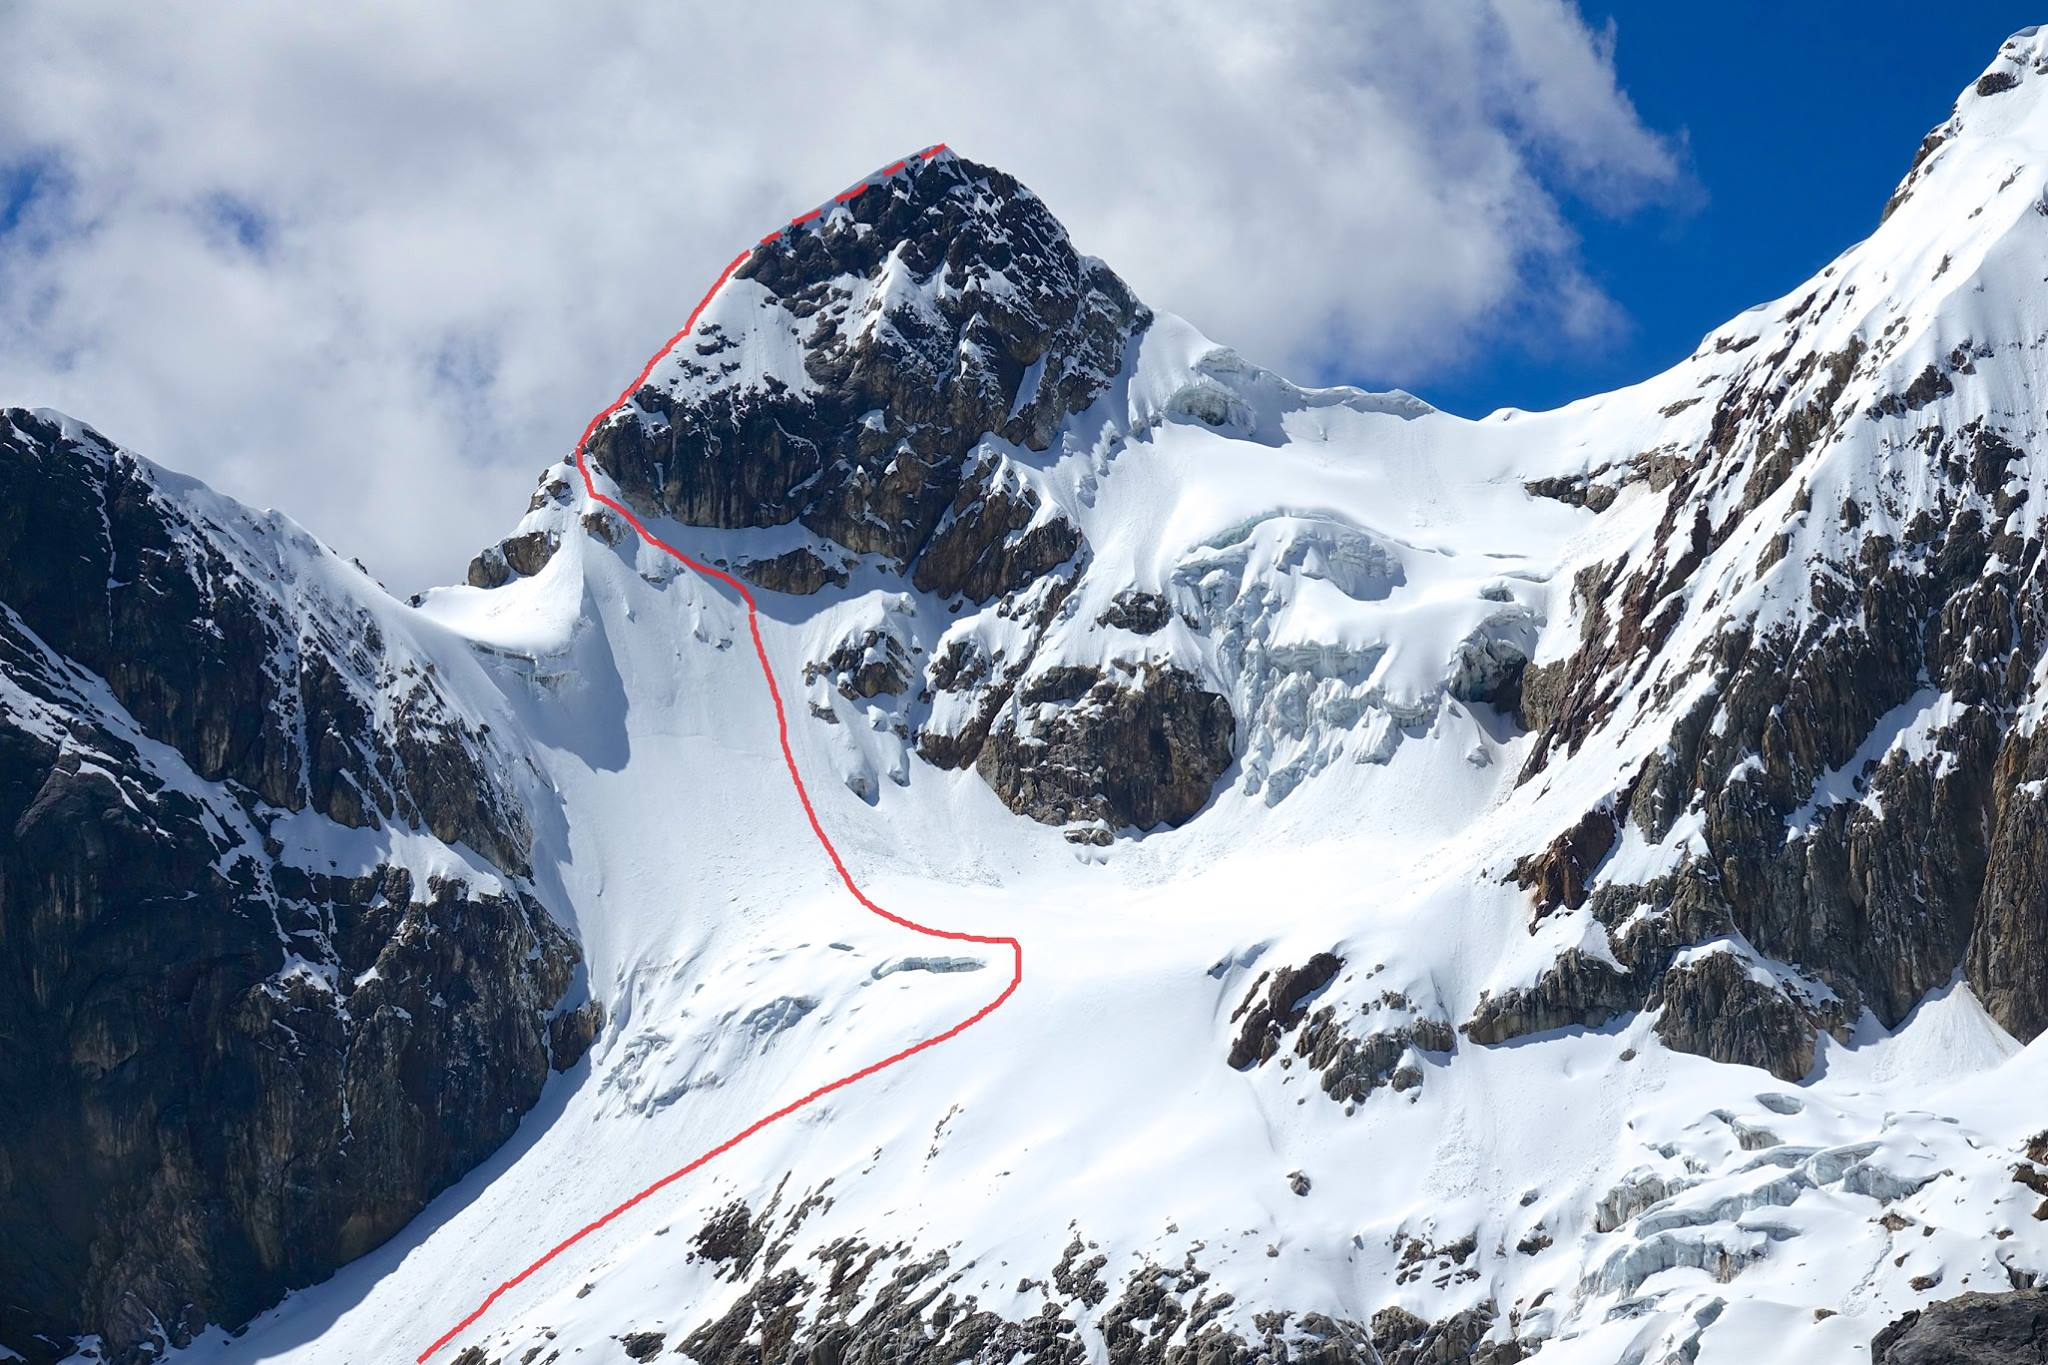 The Peru-Belgium Arête (2018). The route began on the western snow slopes of the ca 5,400m peak and then climbed its north ridge.